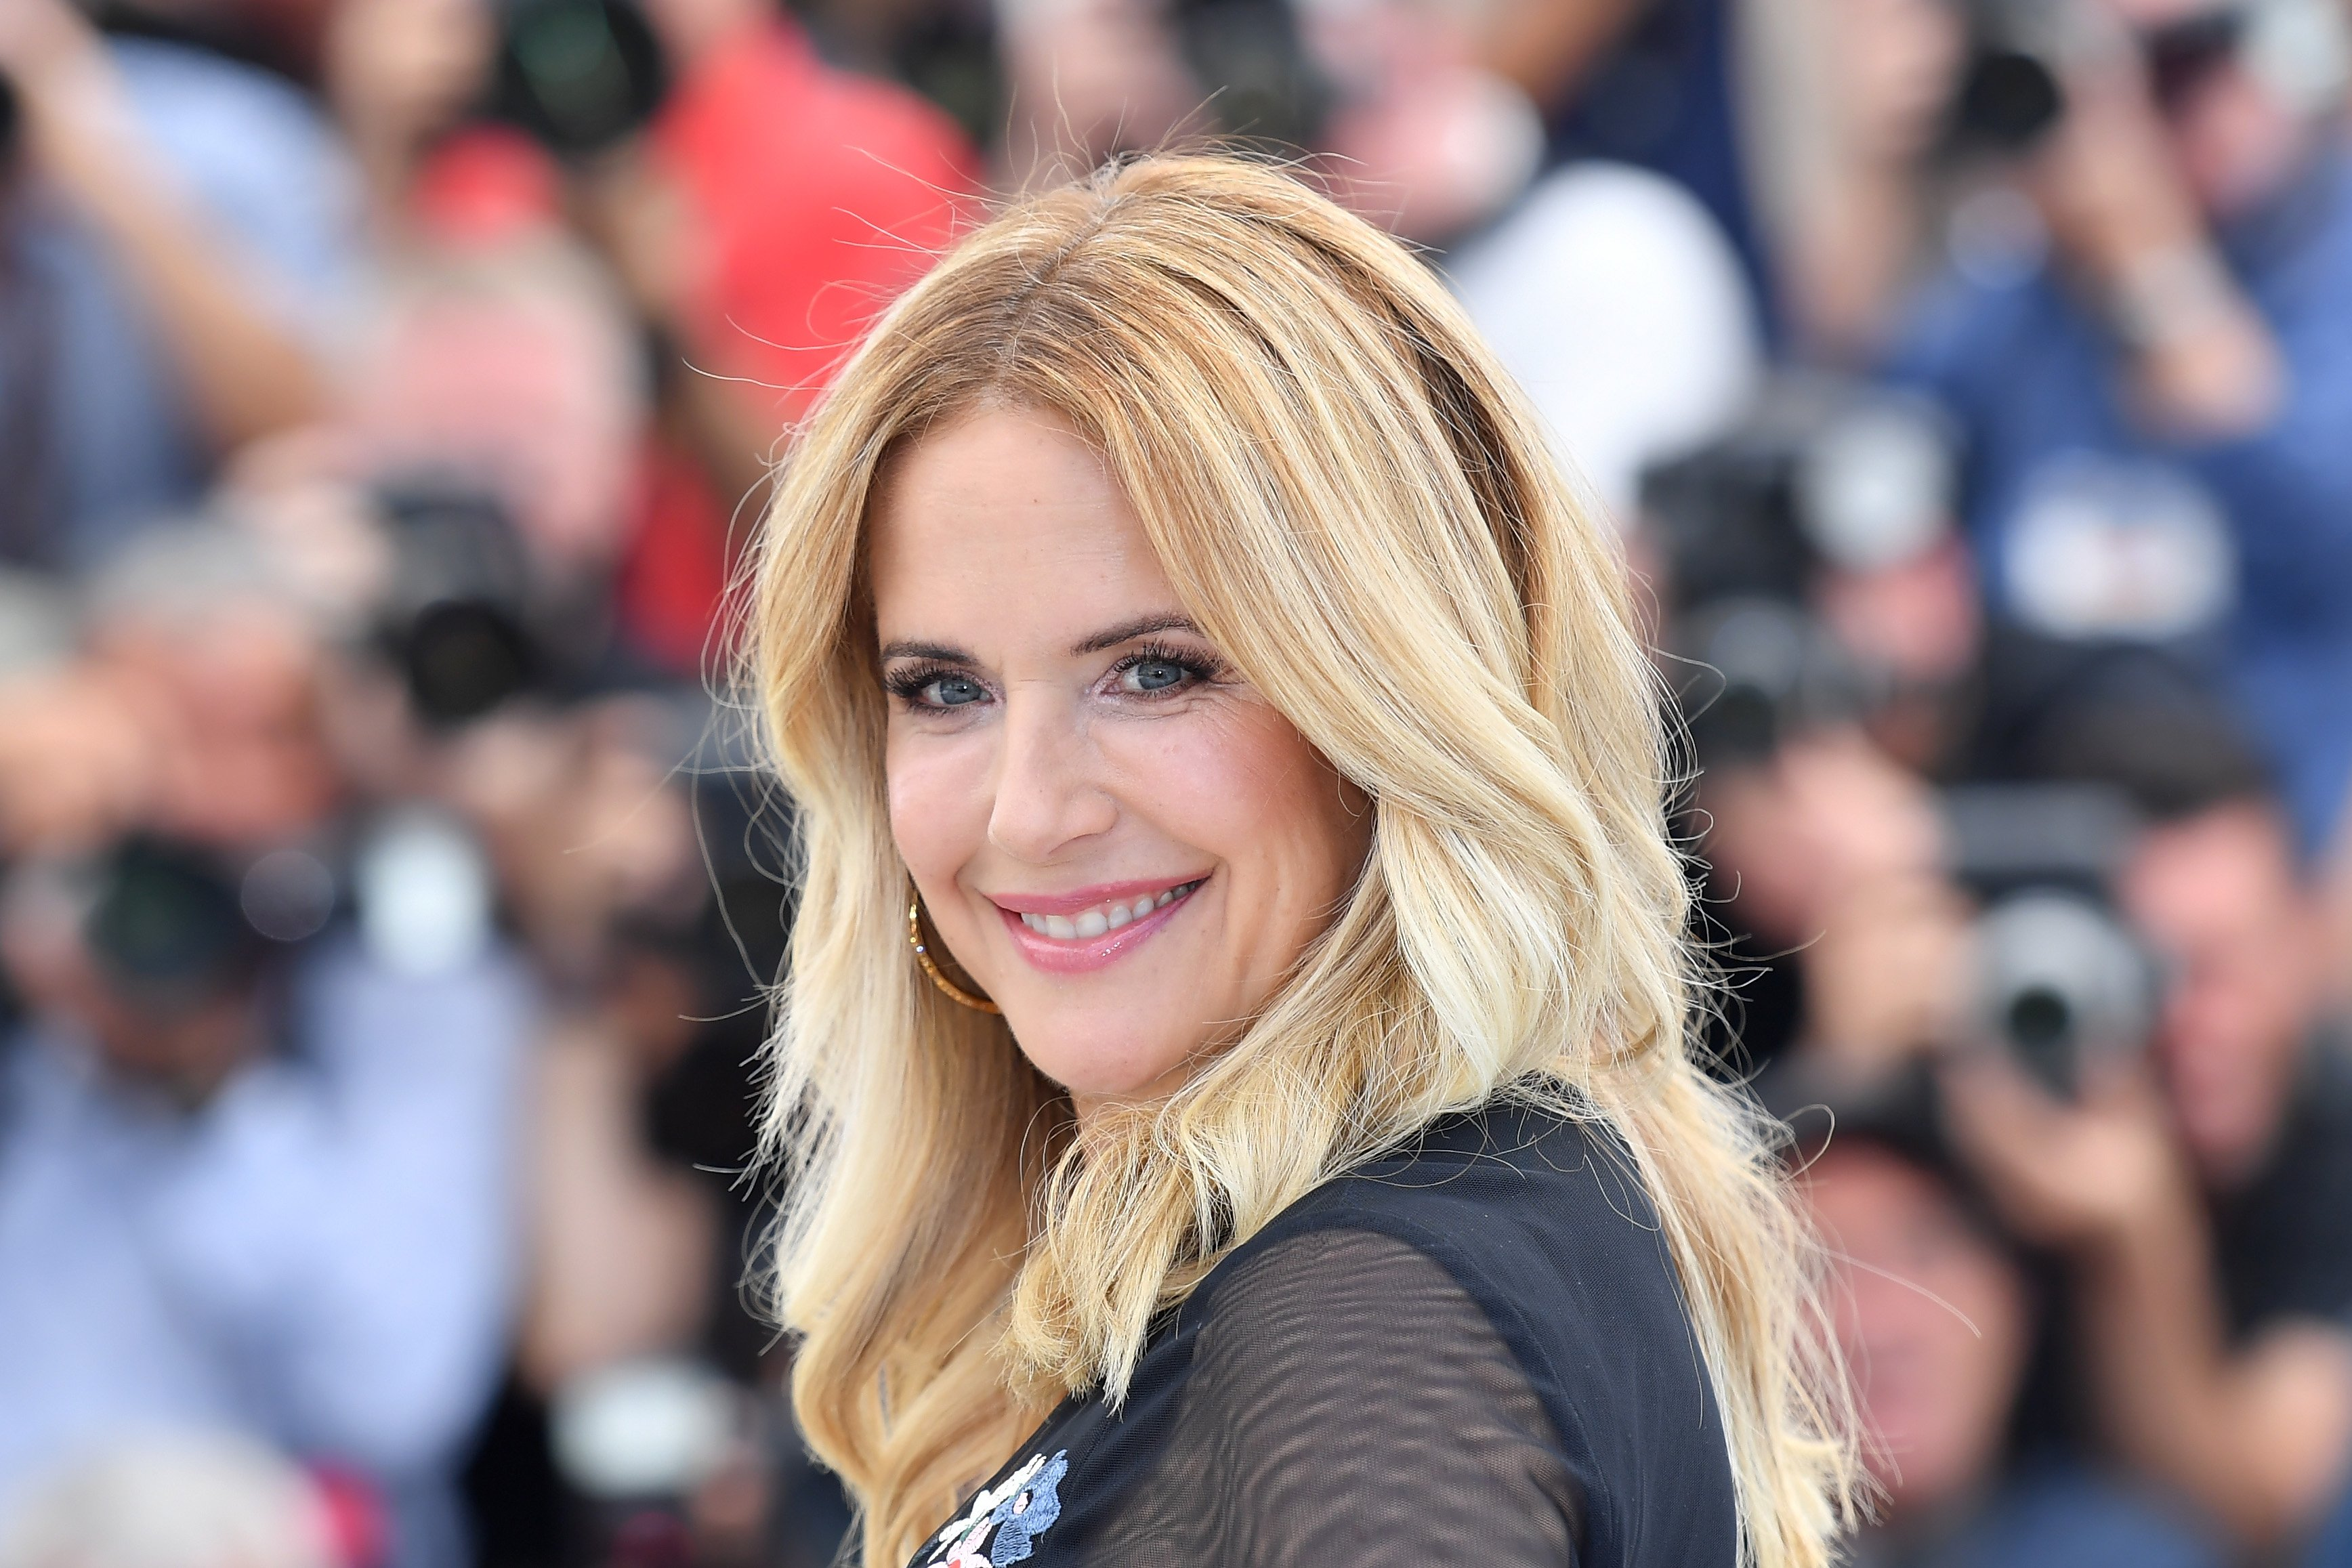 Image Credits: Getty Images | Kelly Preston, one of the celebrities who passed away this year